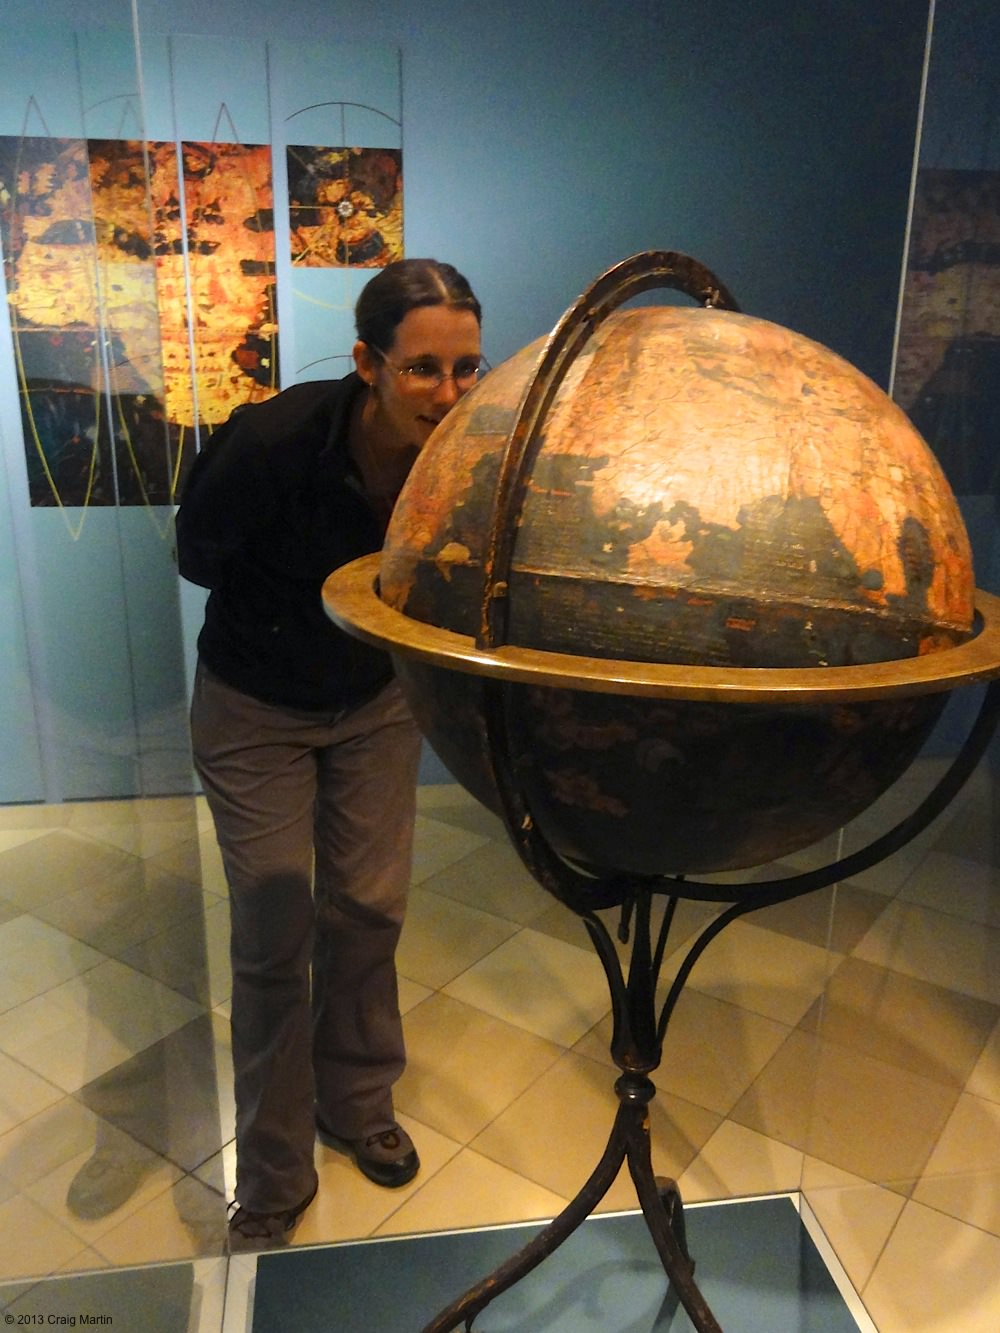 The world's oldest globe at the German History Museum